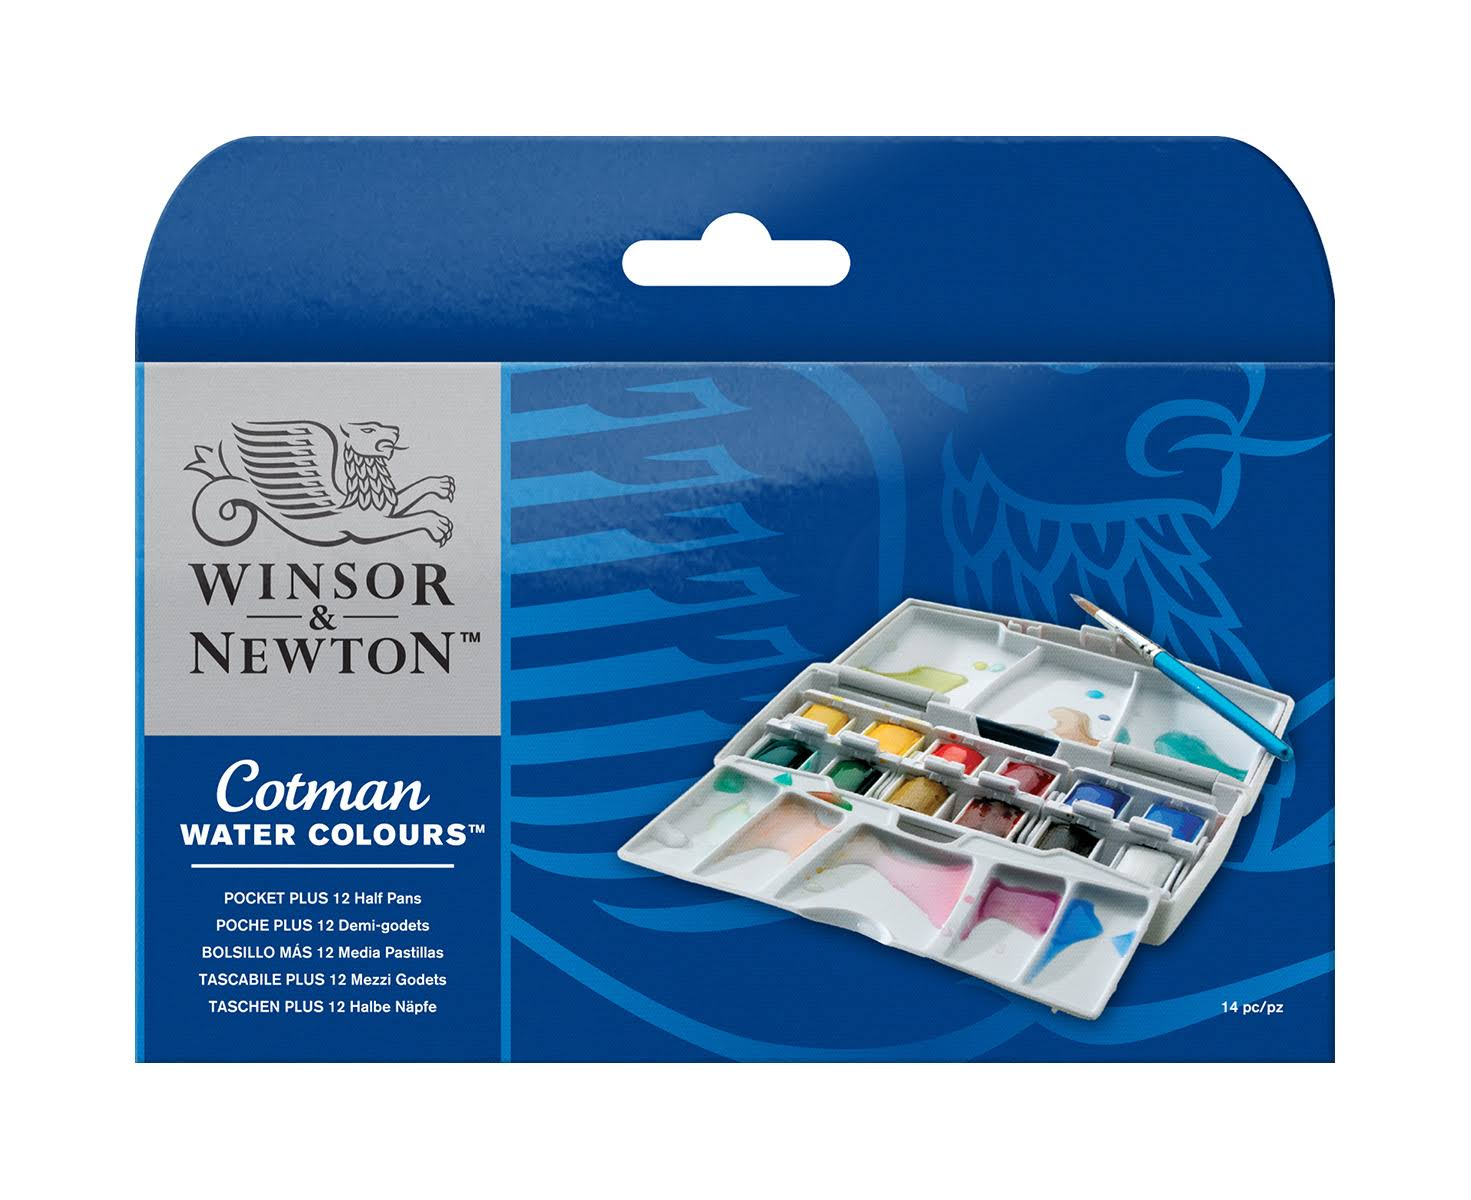 Cotman Water Colour Pocket Plus Set - Set of 12